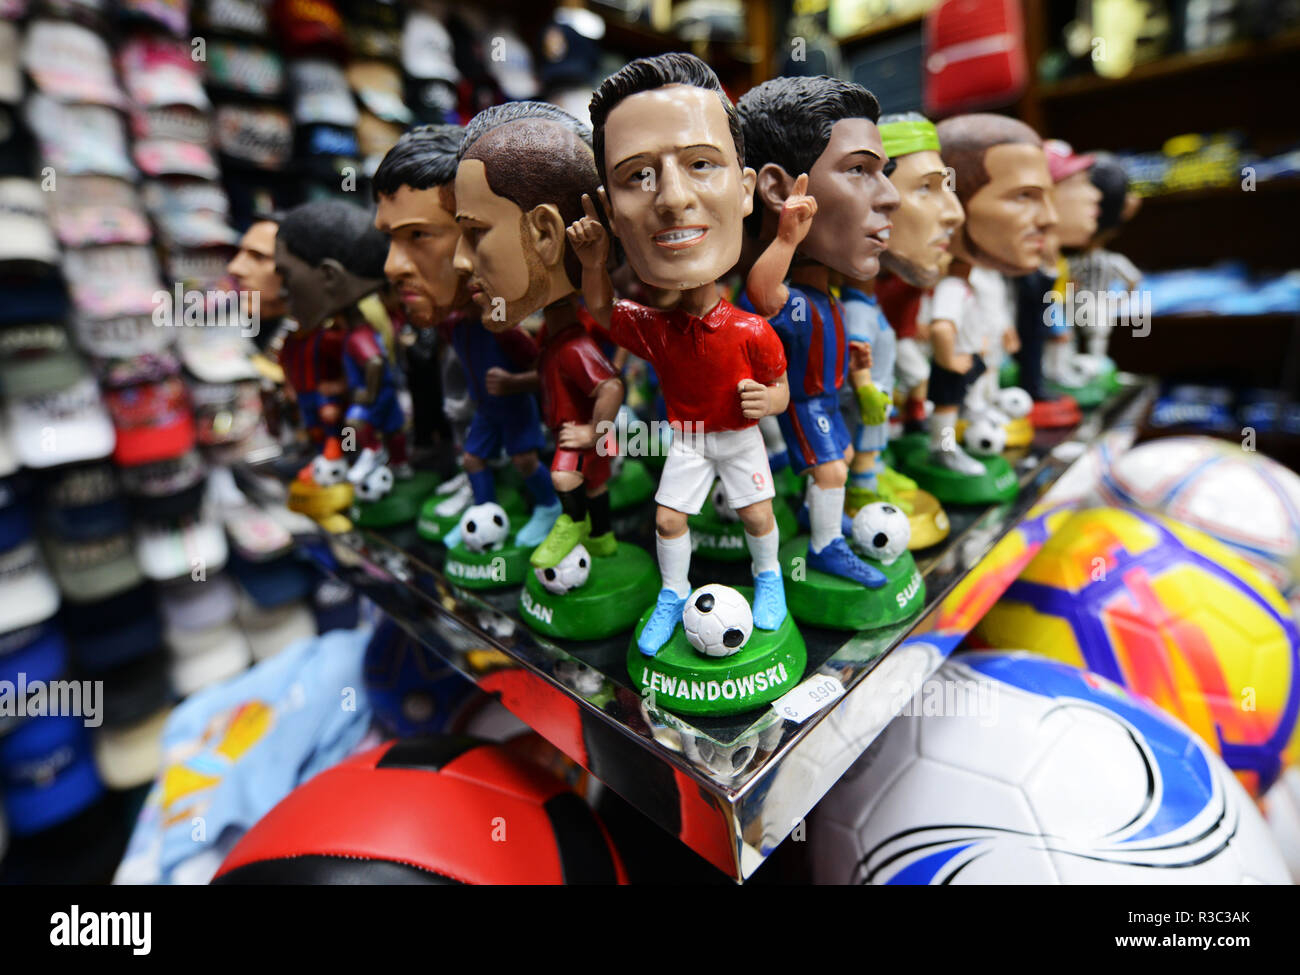 Soccer players dolls sold during the world cup. - Stock Image